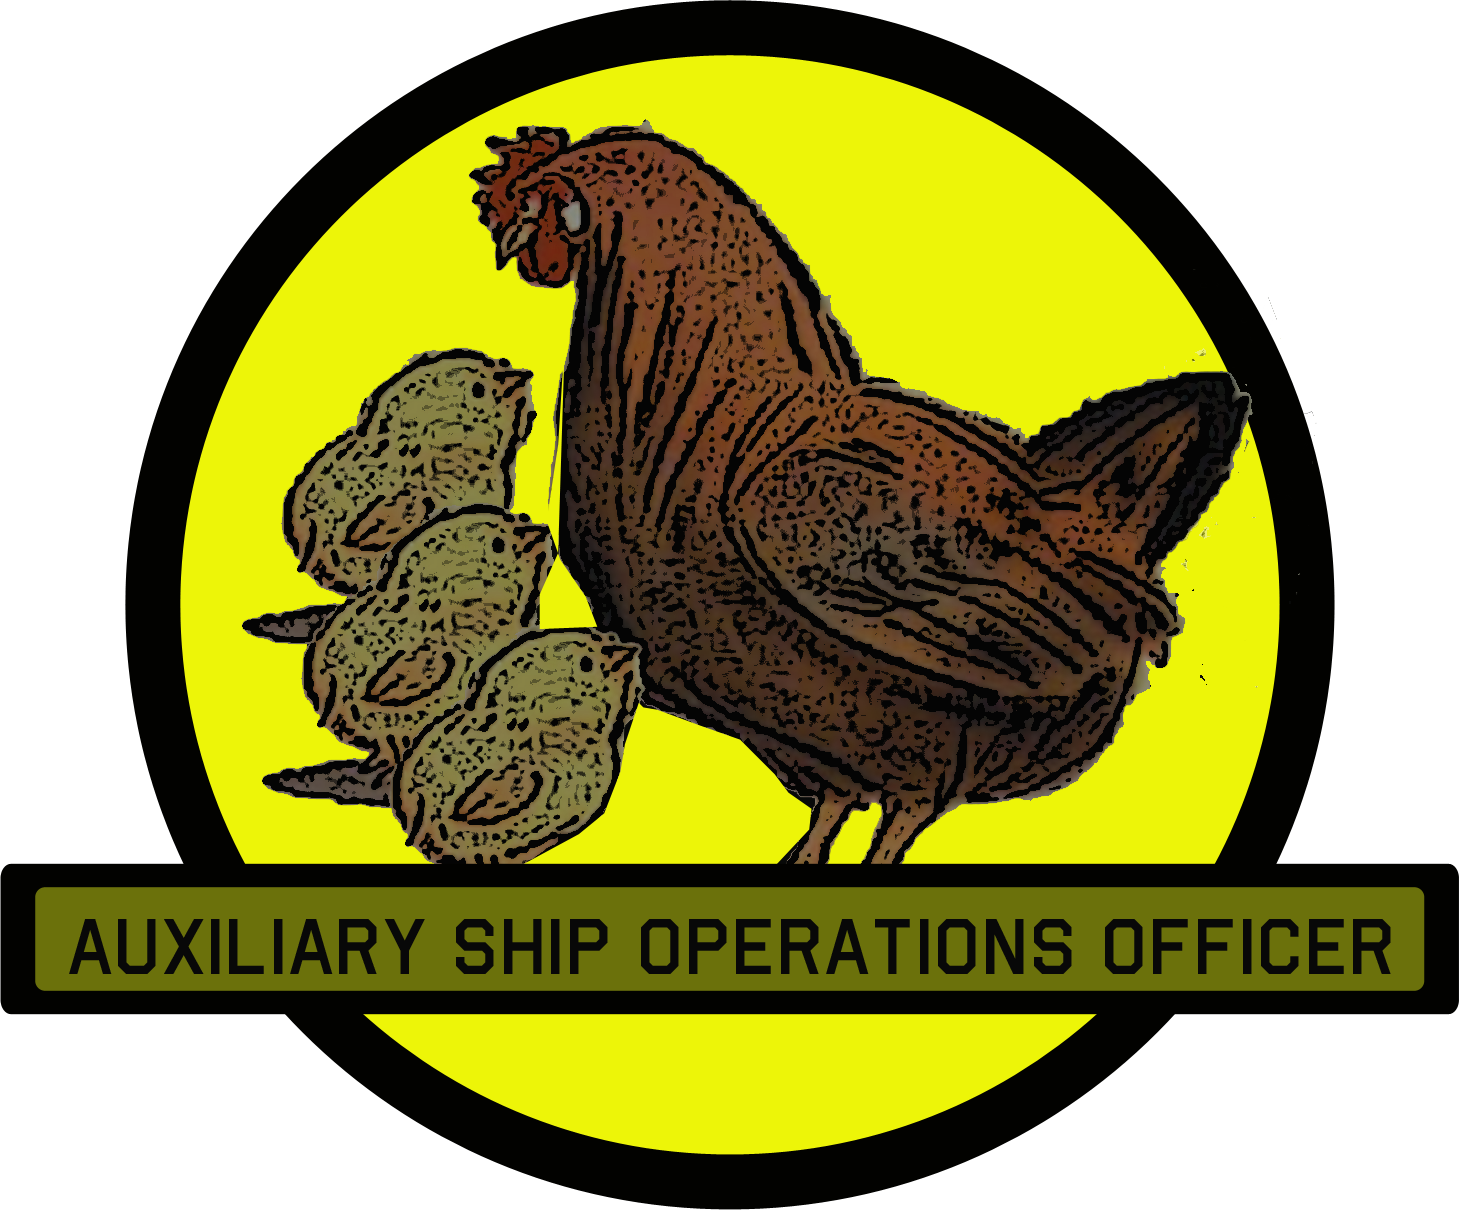 Auxiliary Ship Operations Officer